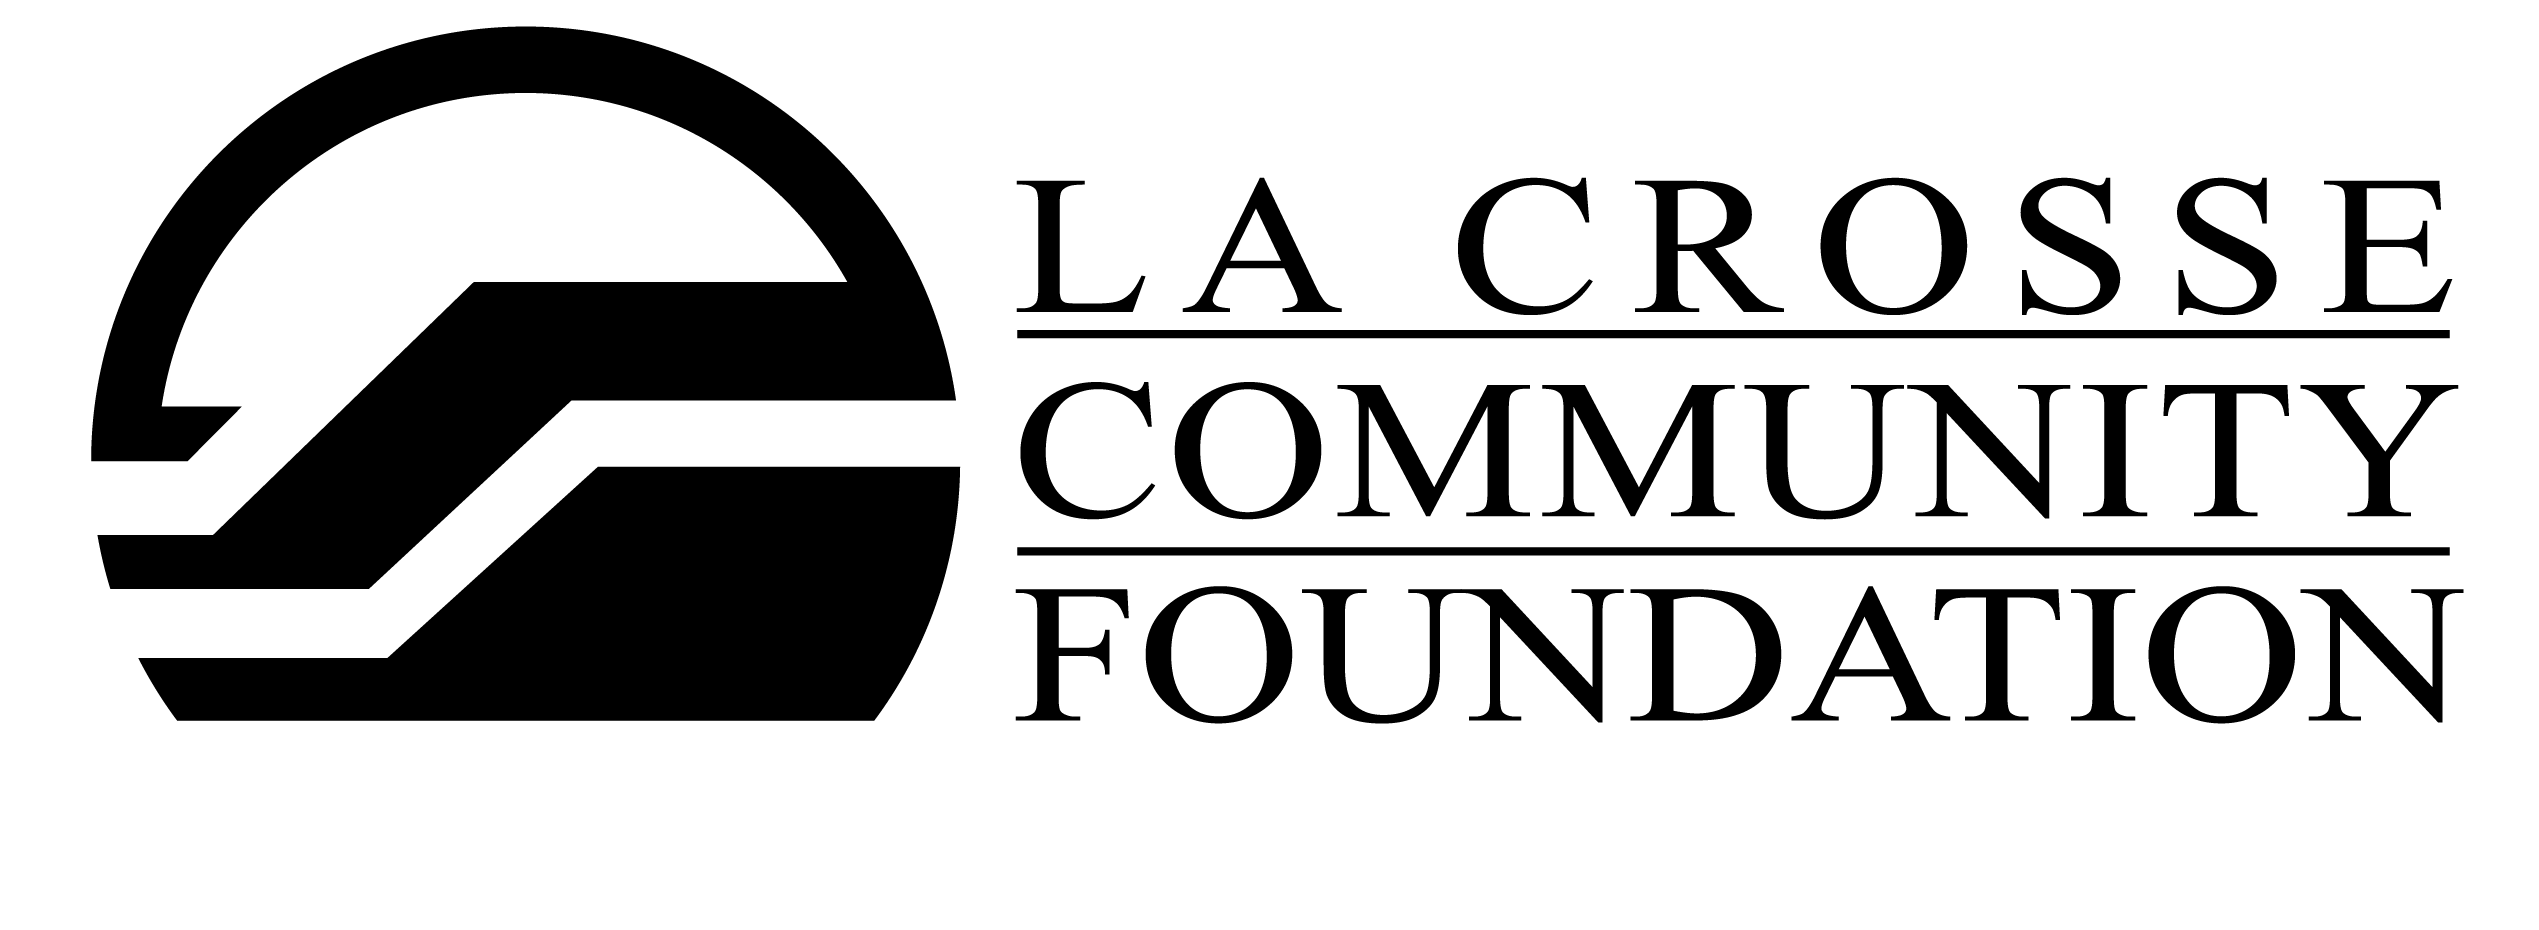 LaCrosse Community Foundation